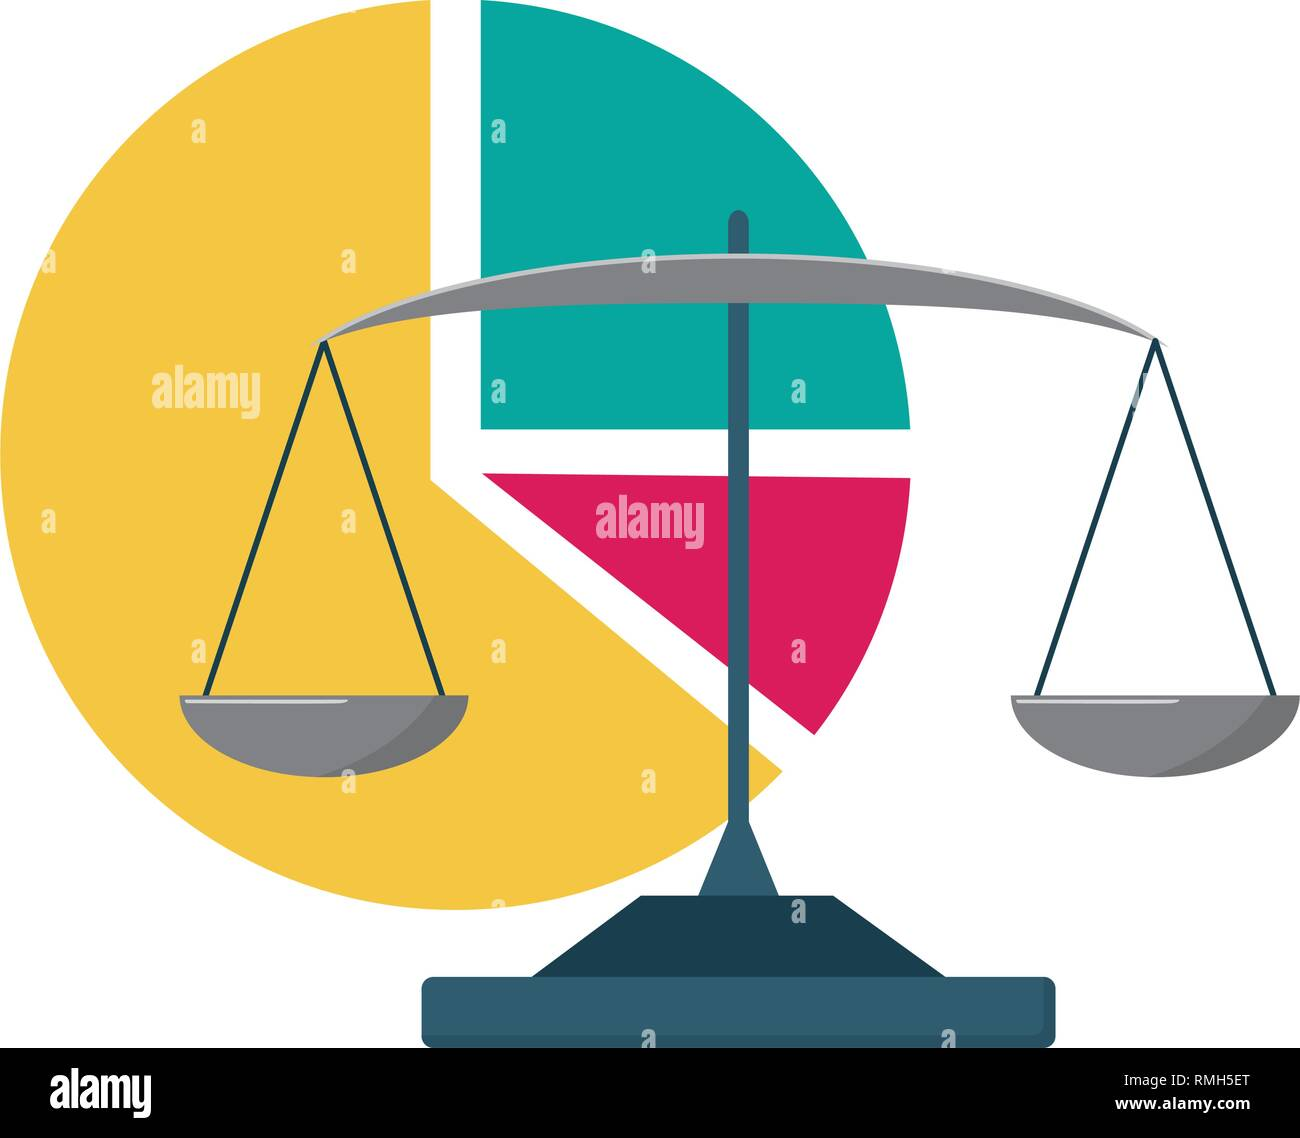 business balance and chart pie report stock vector art Thermometer Diagram business balance and chart pie report